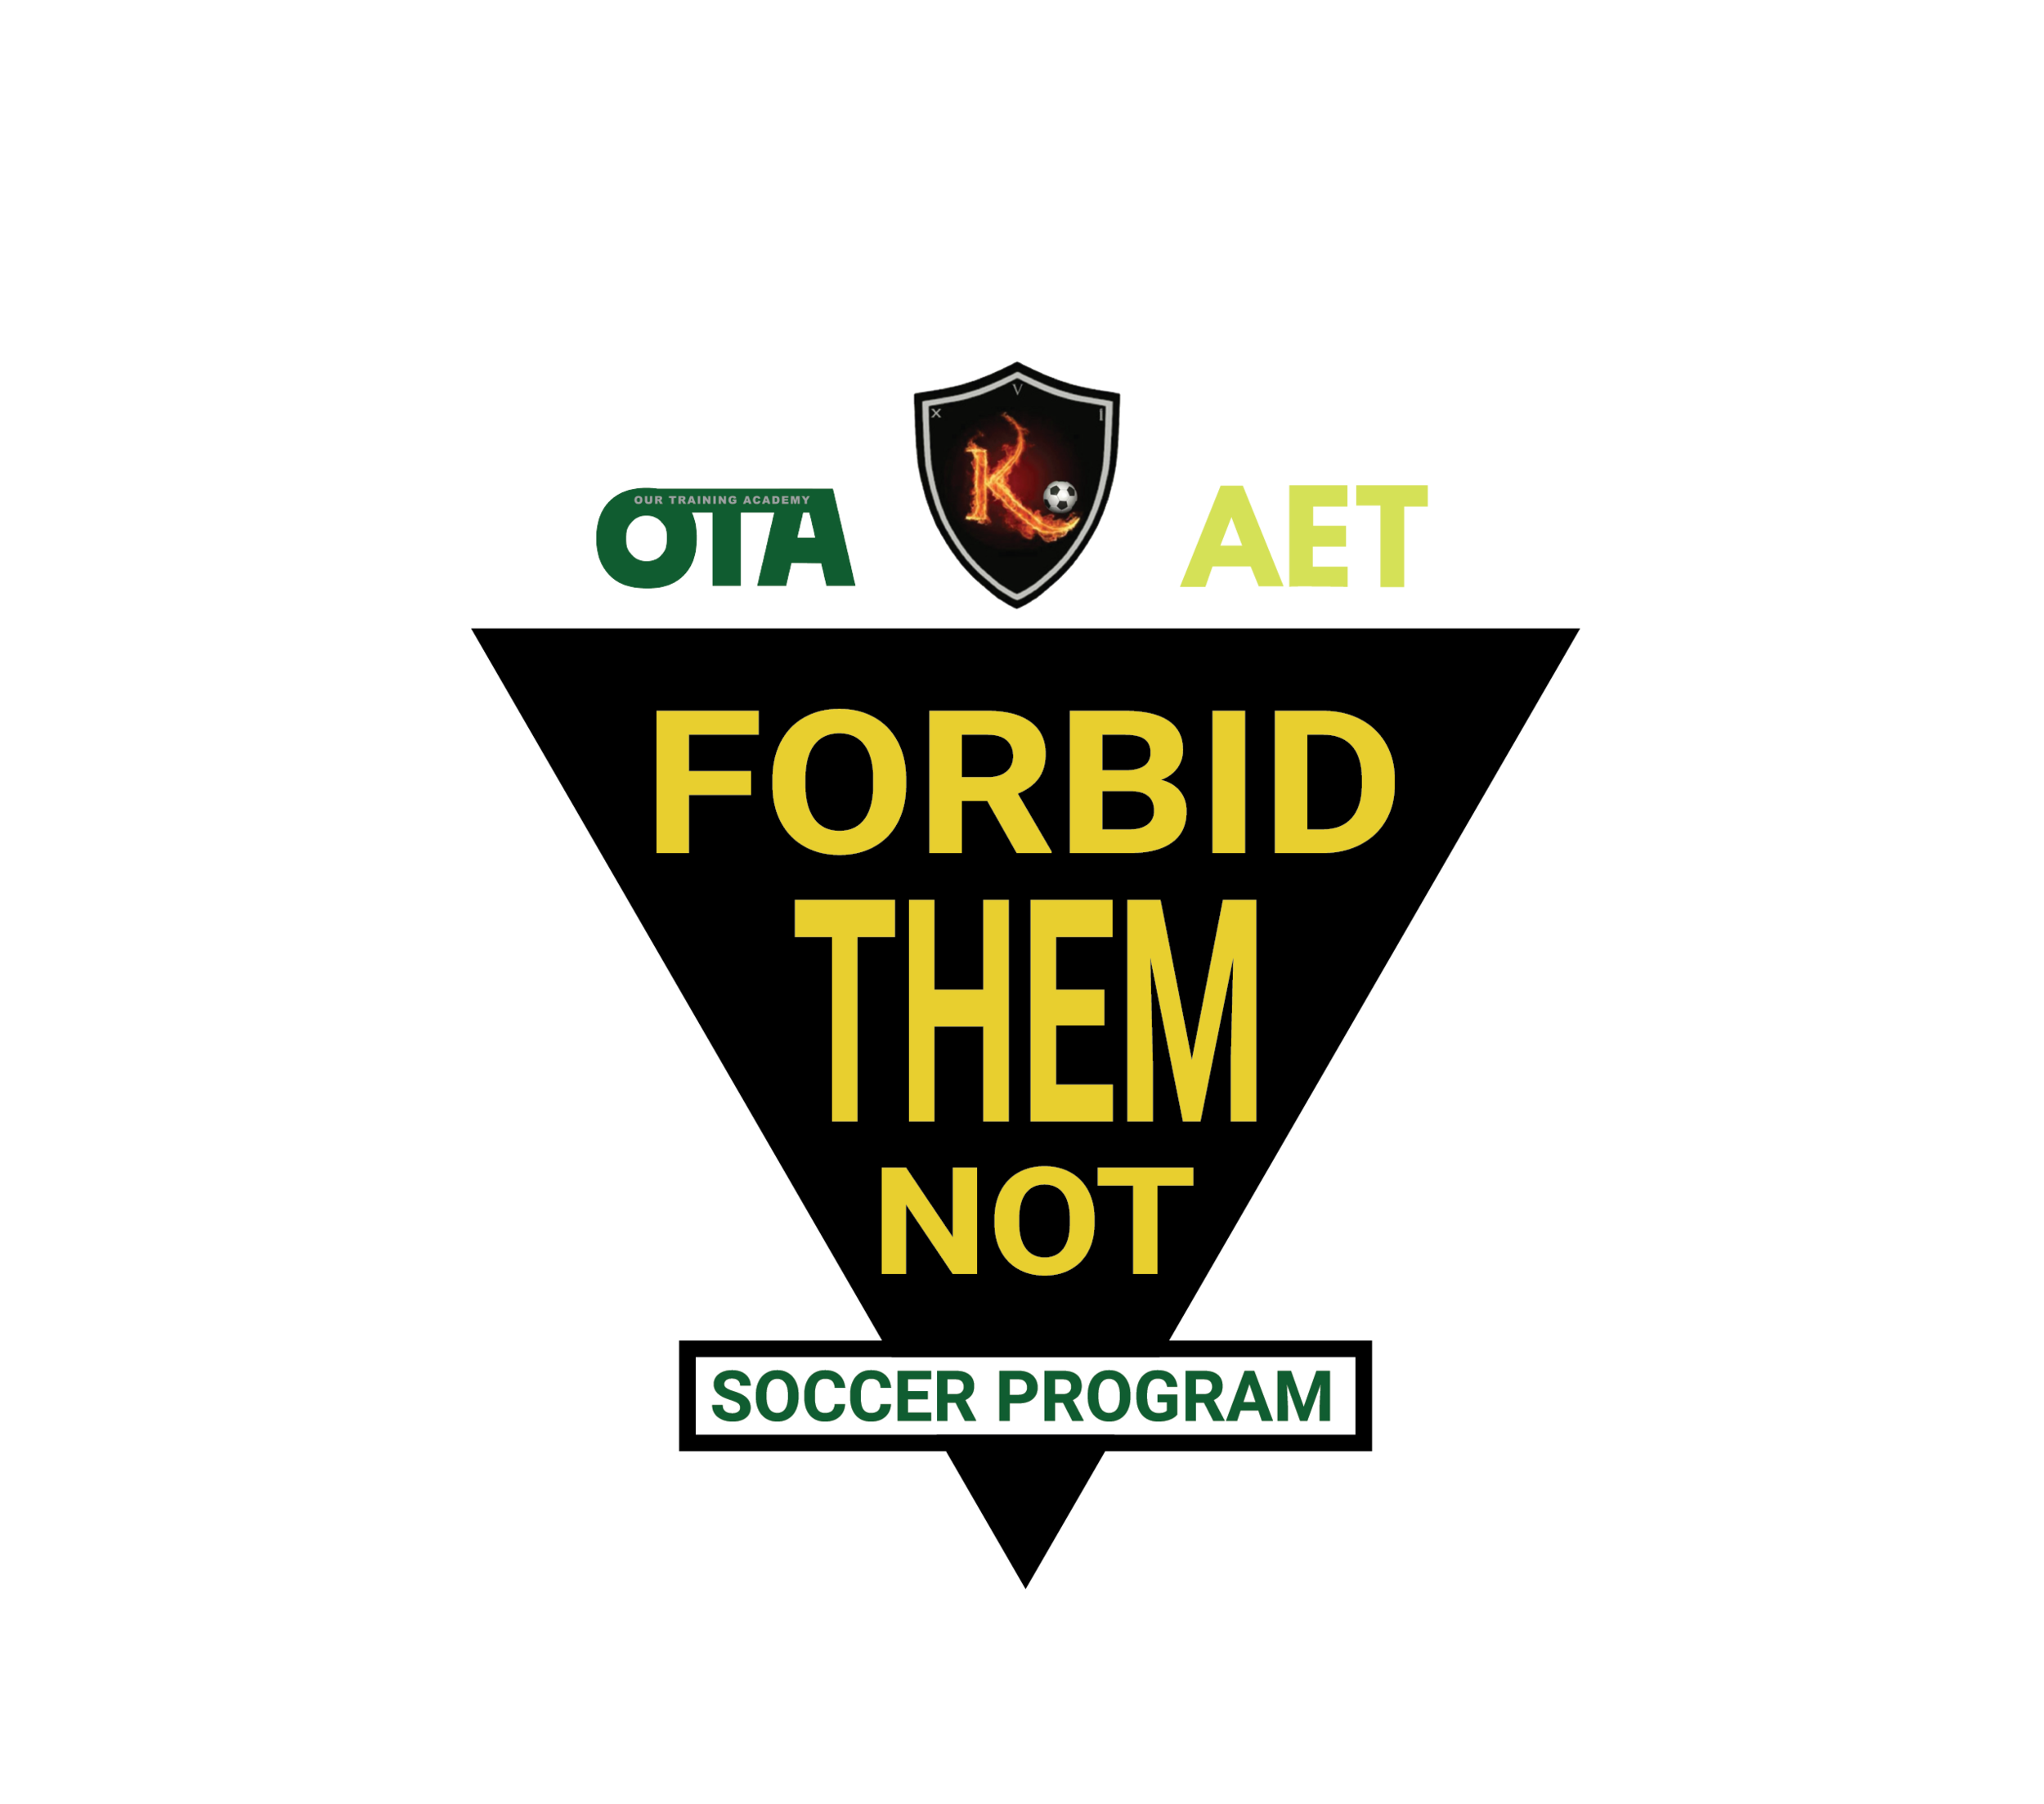 FREE TRAINING PROGRAM - Forbid Them Not is a FREE TRAINING program for 2011 and 2012 soccer players. Our mission is to provide every athlete the opportunities to be part of this beautiful game. Our focus will to be to instruct the FUNdamentals skills and movements needed for soccer. This will all be done in a challenging environment that promotes creativity and players decision-making skills to help players reach their goals and potential!